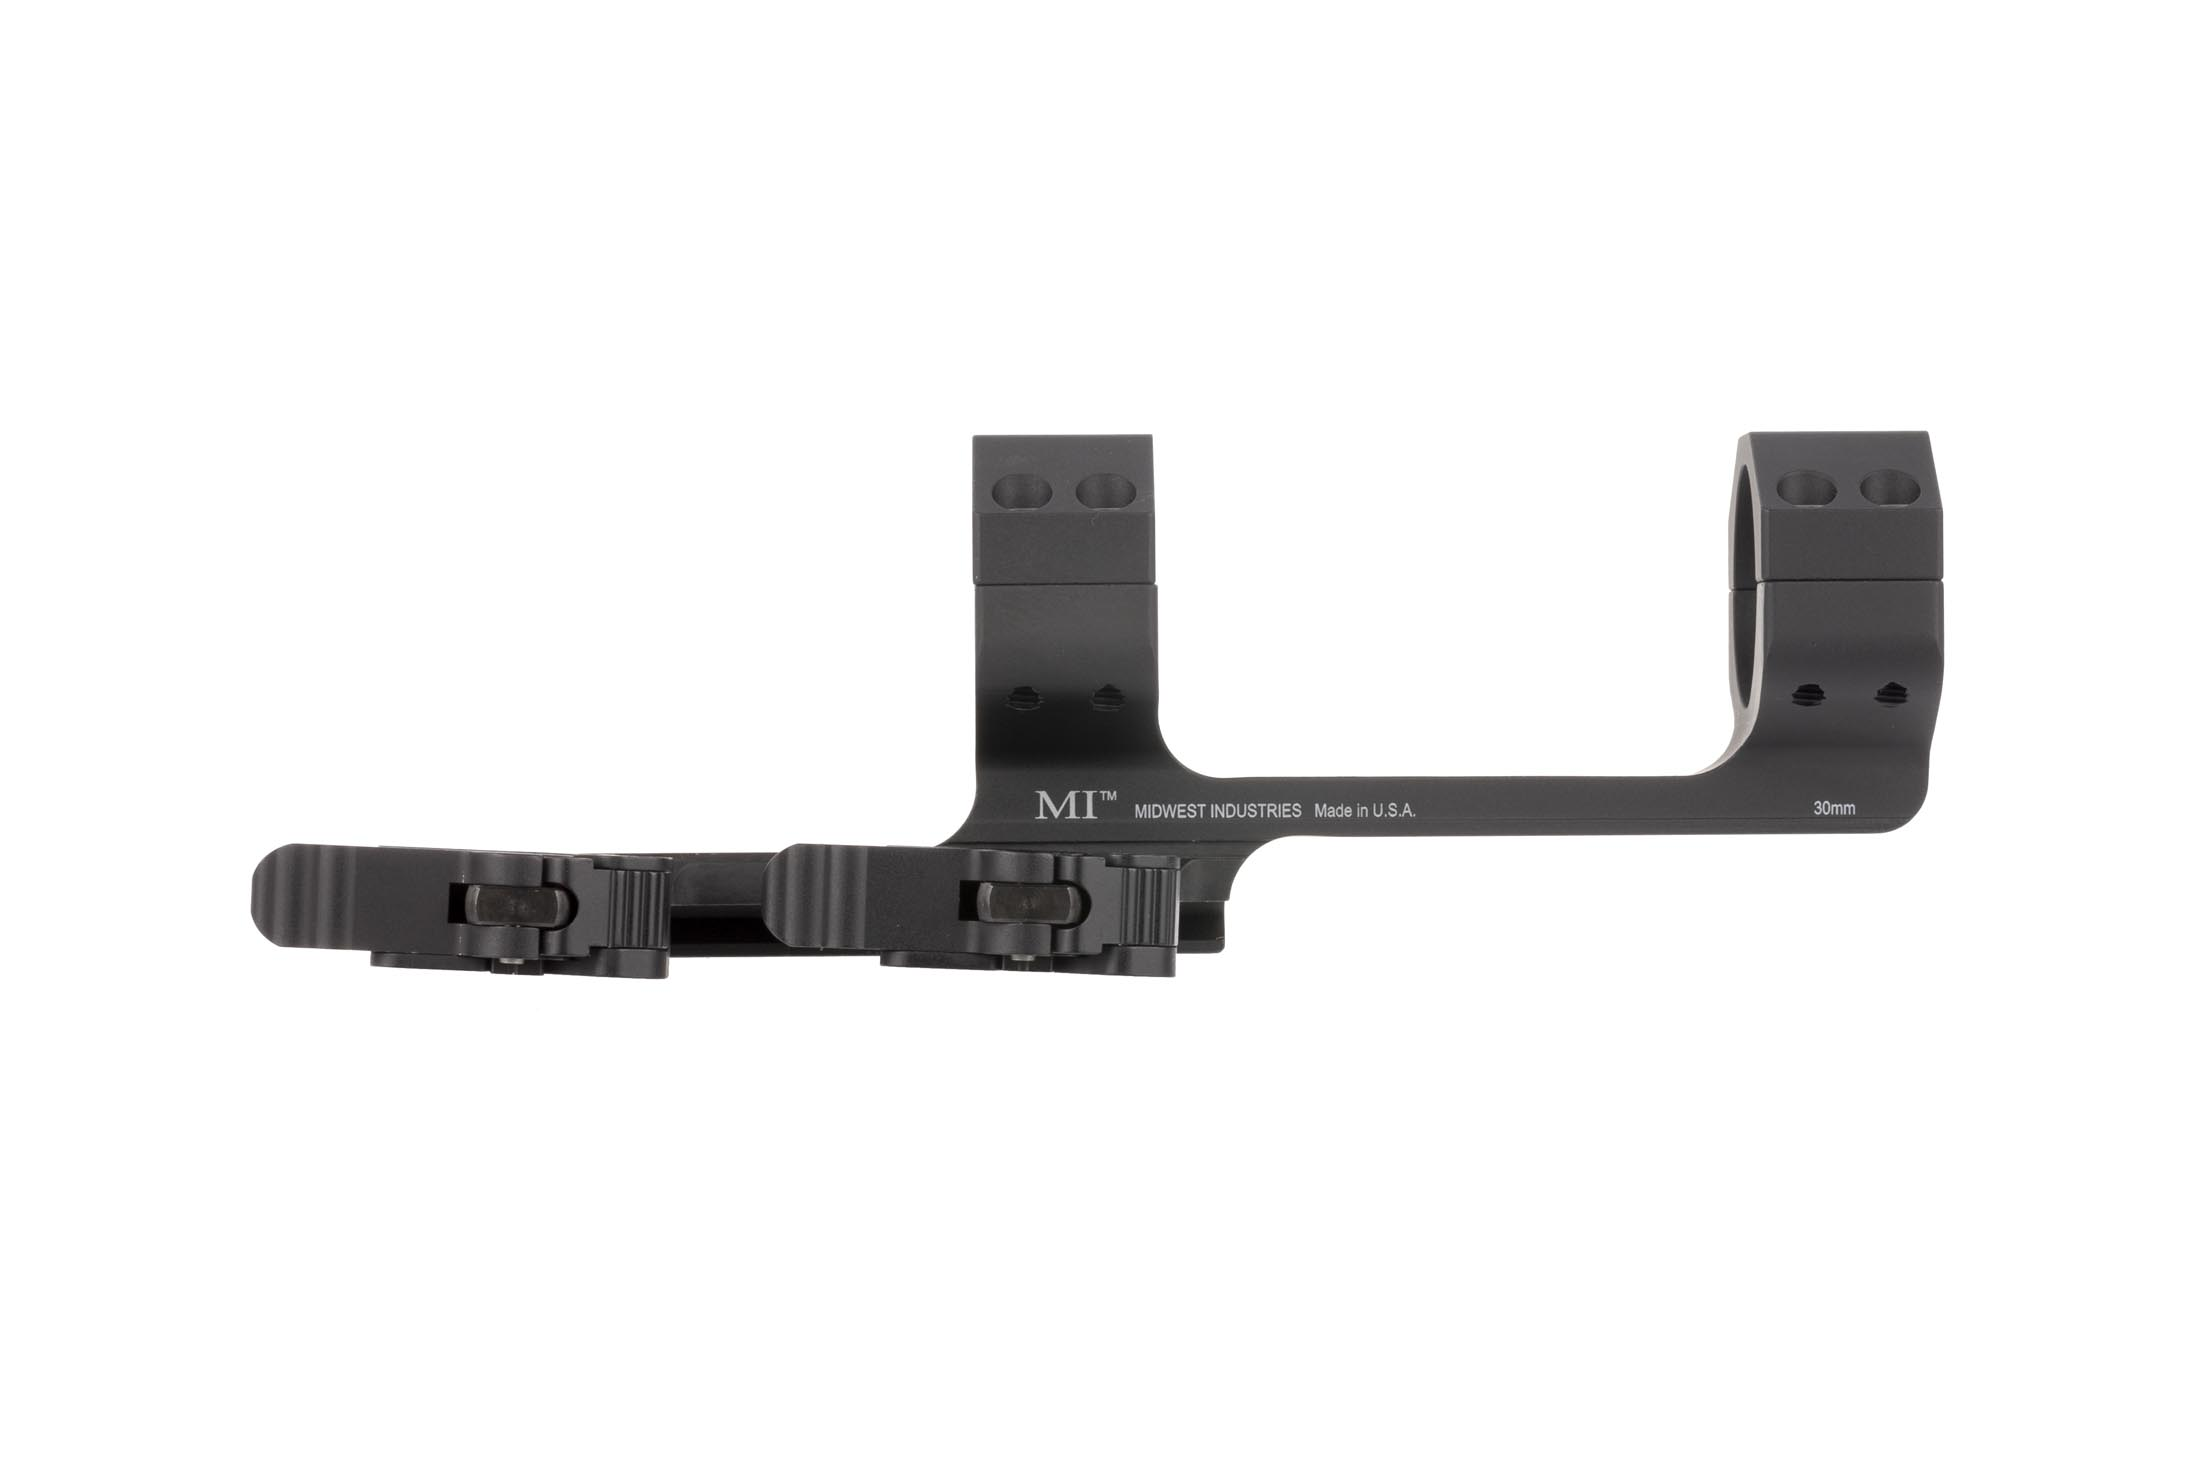 The Midwest Industries 30mm extended quick detach scope mount is made in the U.S.A. out of 6061 aluminum